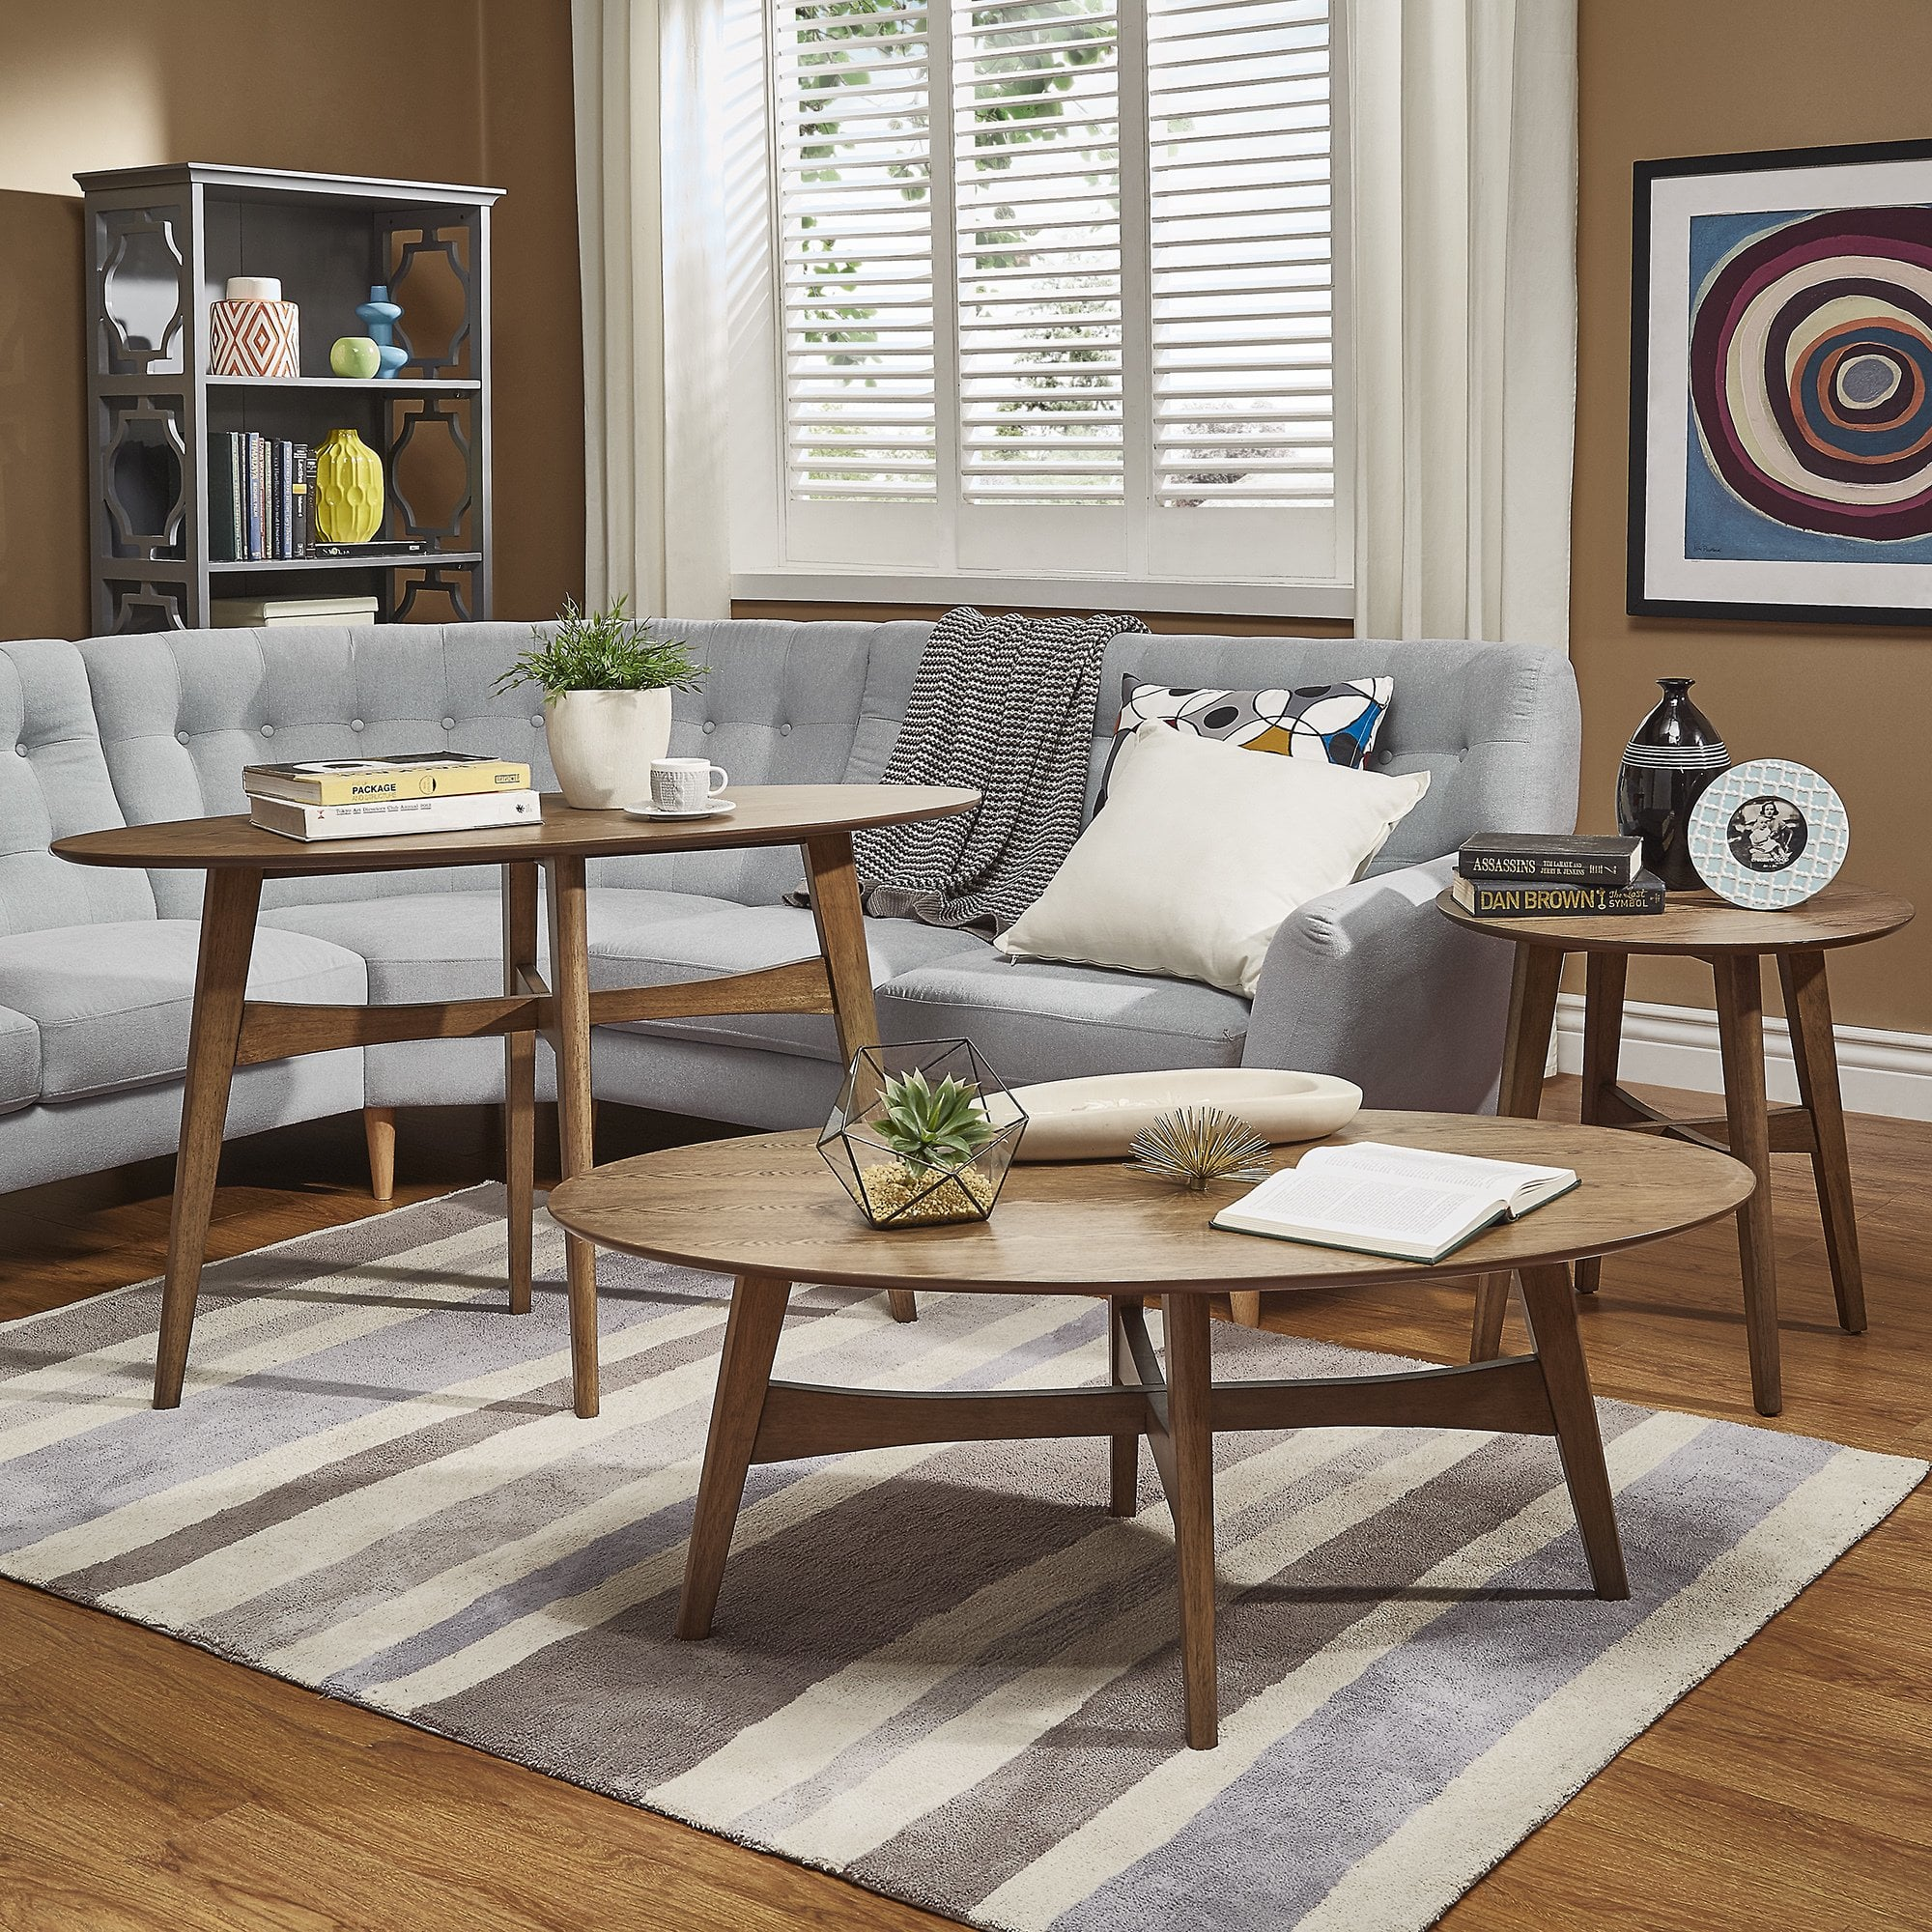 rona wood accent tables inspire modern free mid century living room essentials mixed material table gaming raw side door console cabinet threshold garden occasional dining chairs